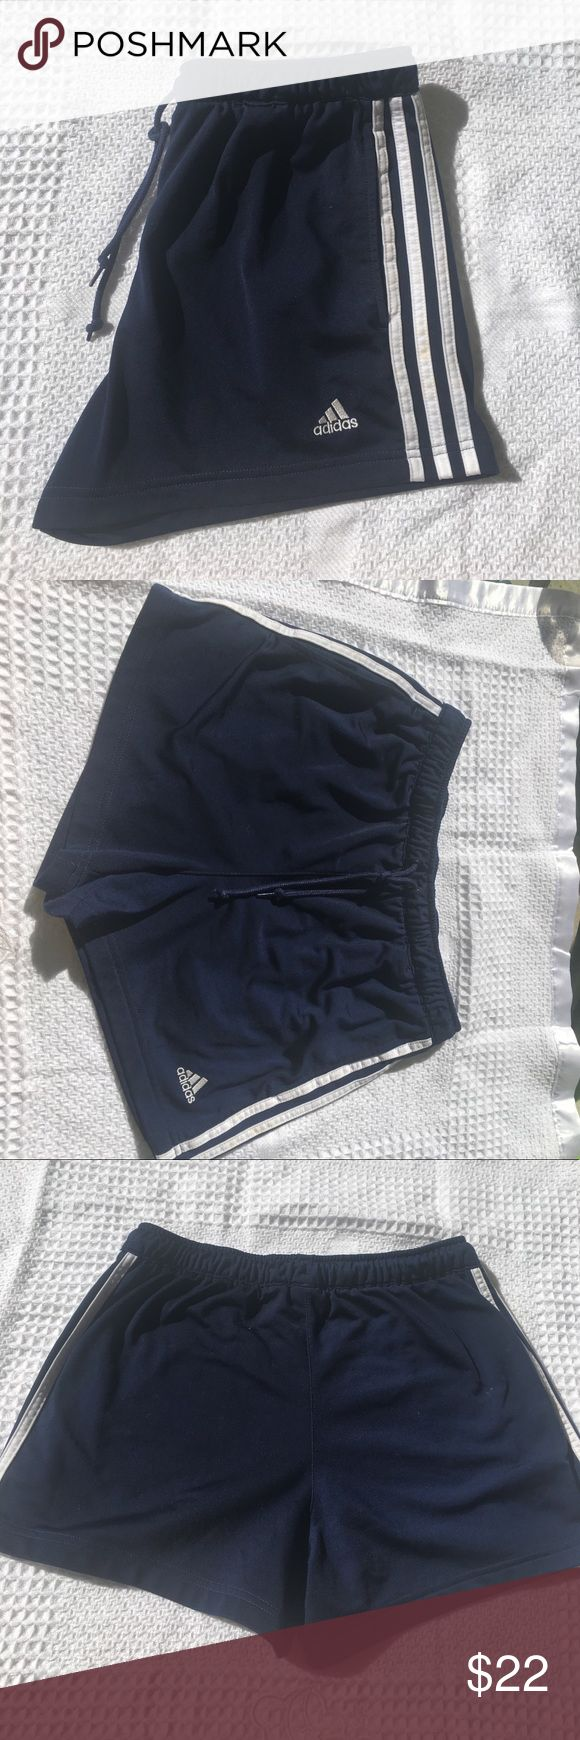 Navy blue adidas women's shorts Navy blue adidas striped shorts. They are dark blue in color with three white stripes on each side. The adidas logo is on left leg at bottom in sewn white letters. They stretch and have drawstring at waist. Size medium. In overall good condition adidas Shorts